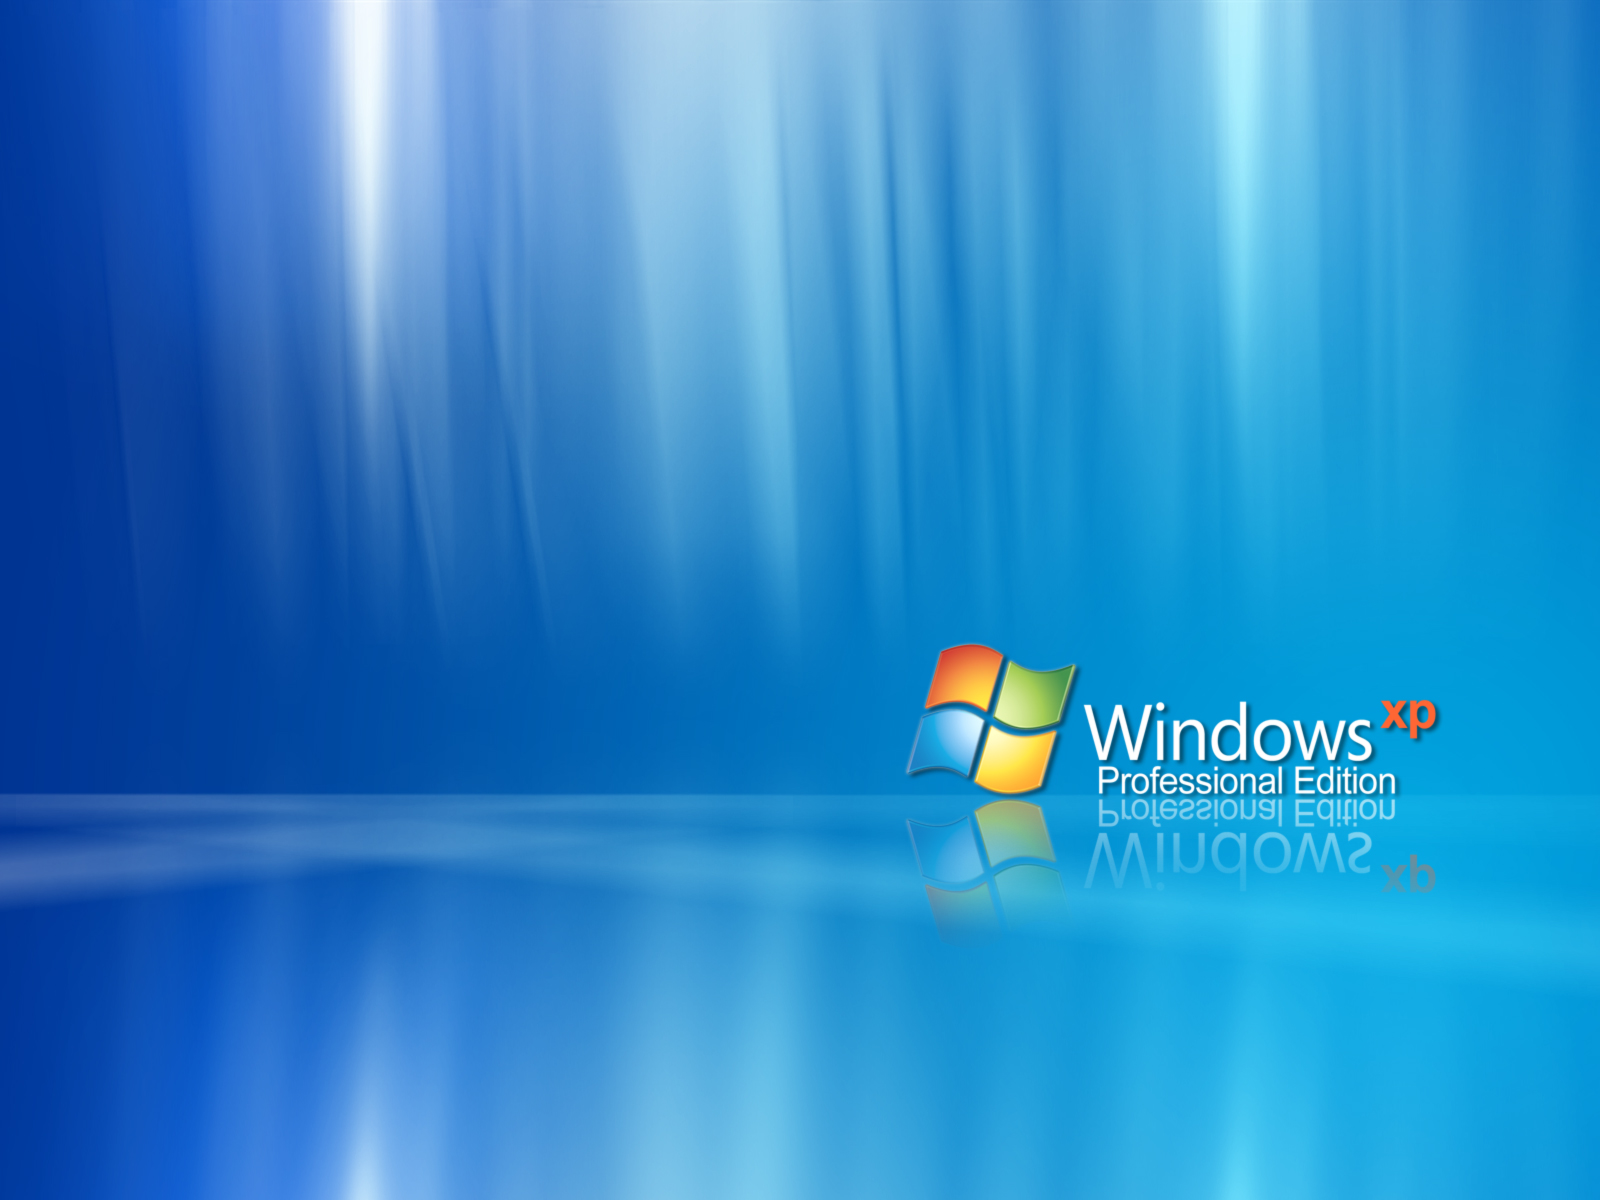 Windows XP Images